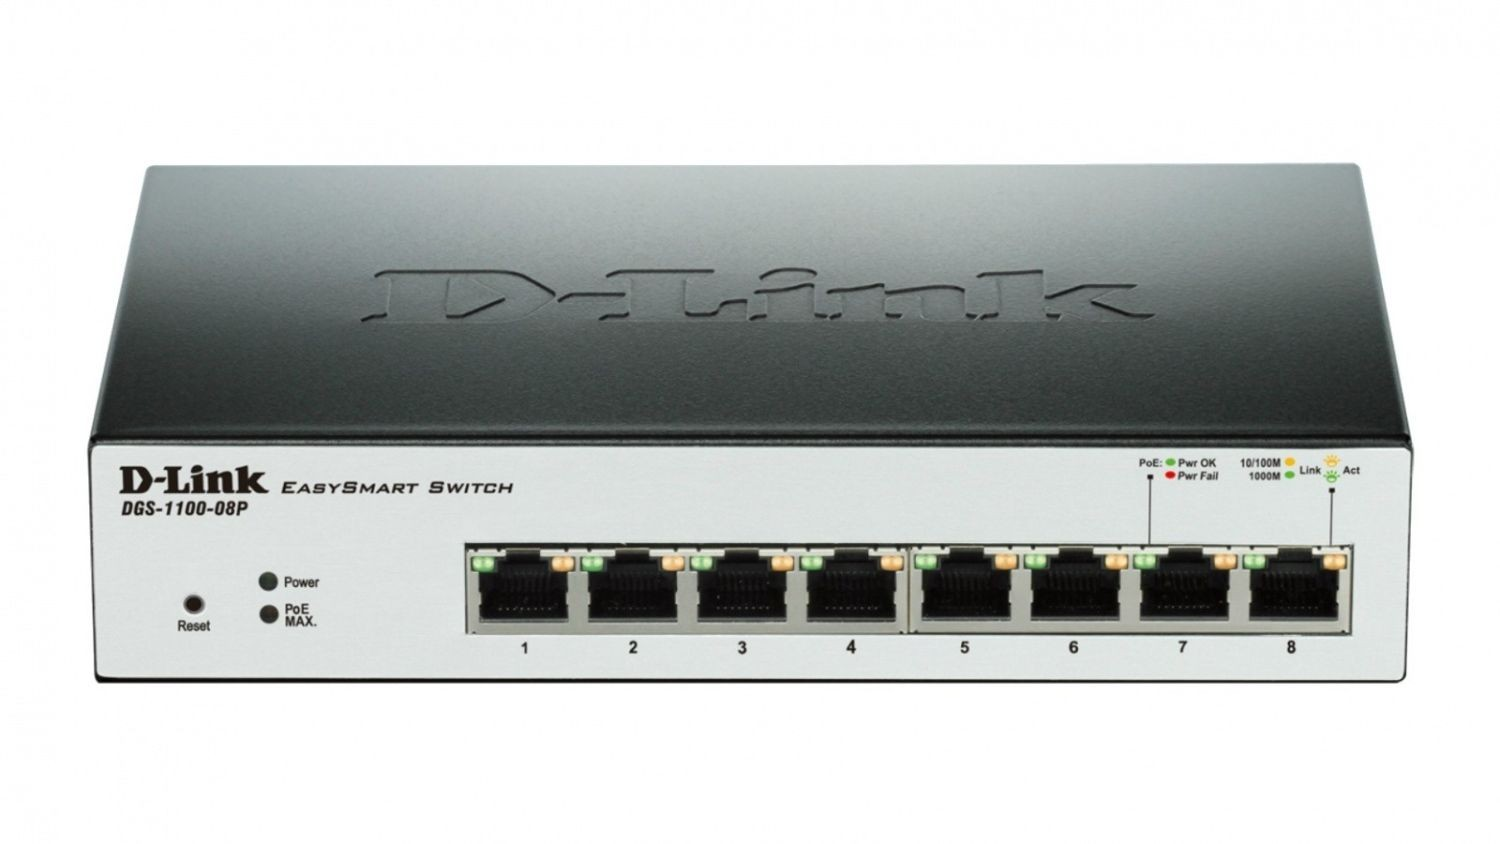 D-Link 8-Port PoE Gigabit EasySmart Switch